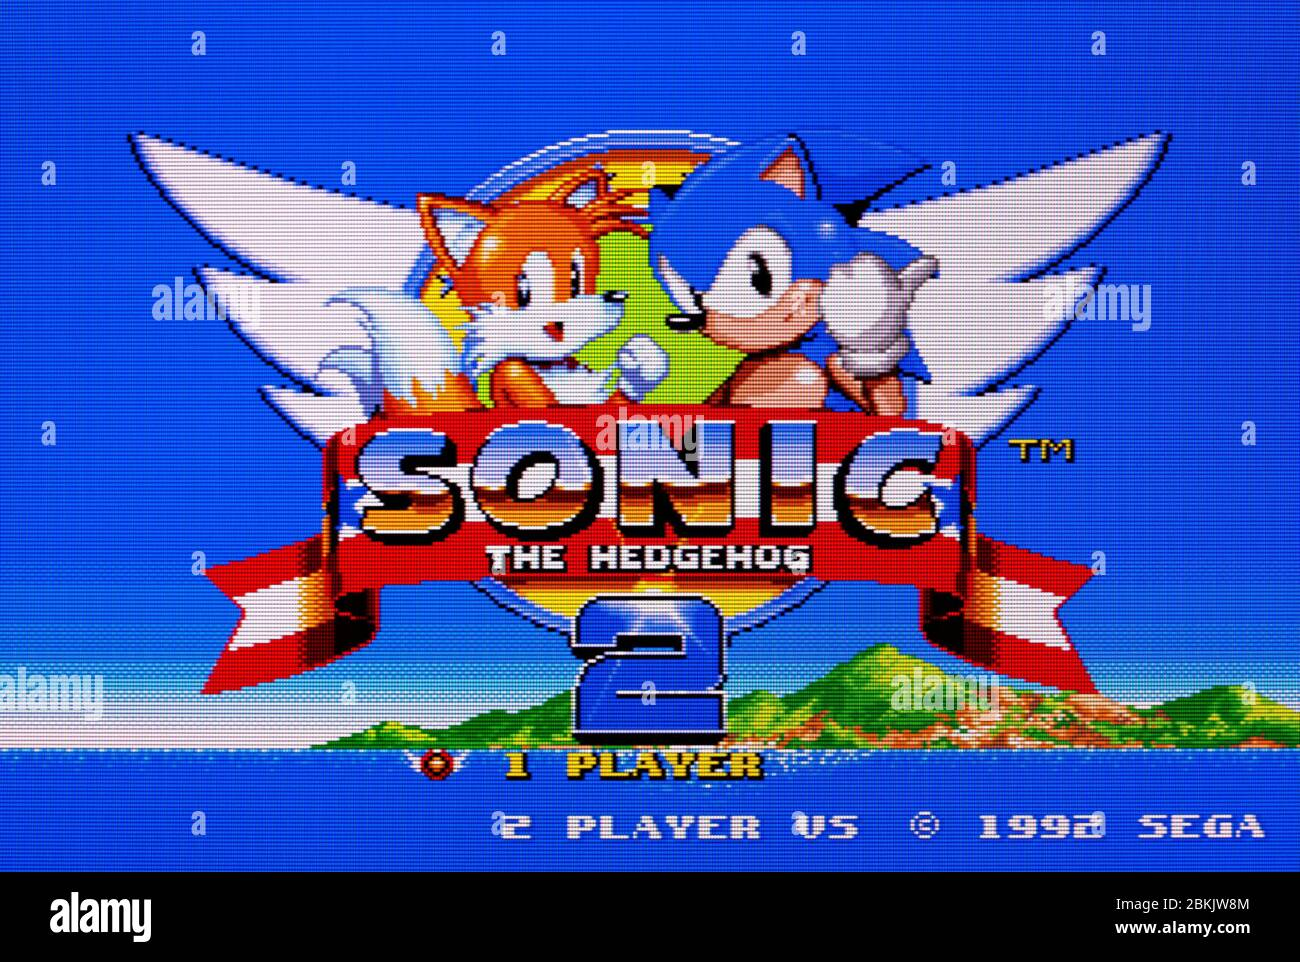 Sonic The Hedgehog 2 Sega Genesis Mega Drive Editorial Use Only Stock Photo 356300804 Alamy